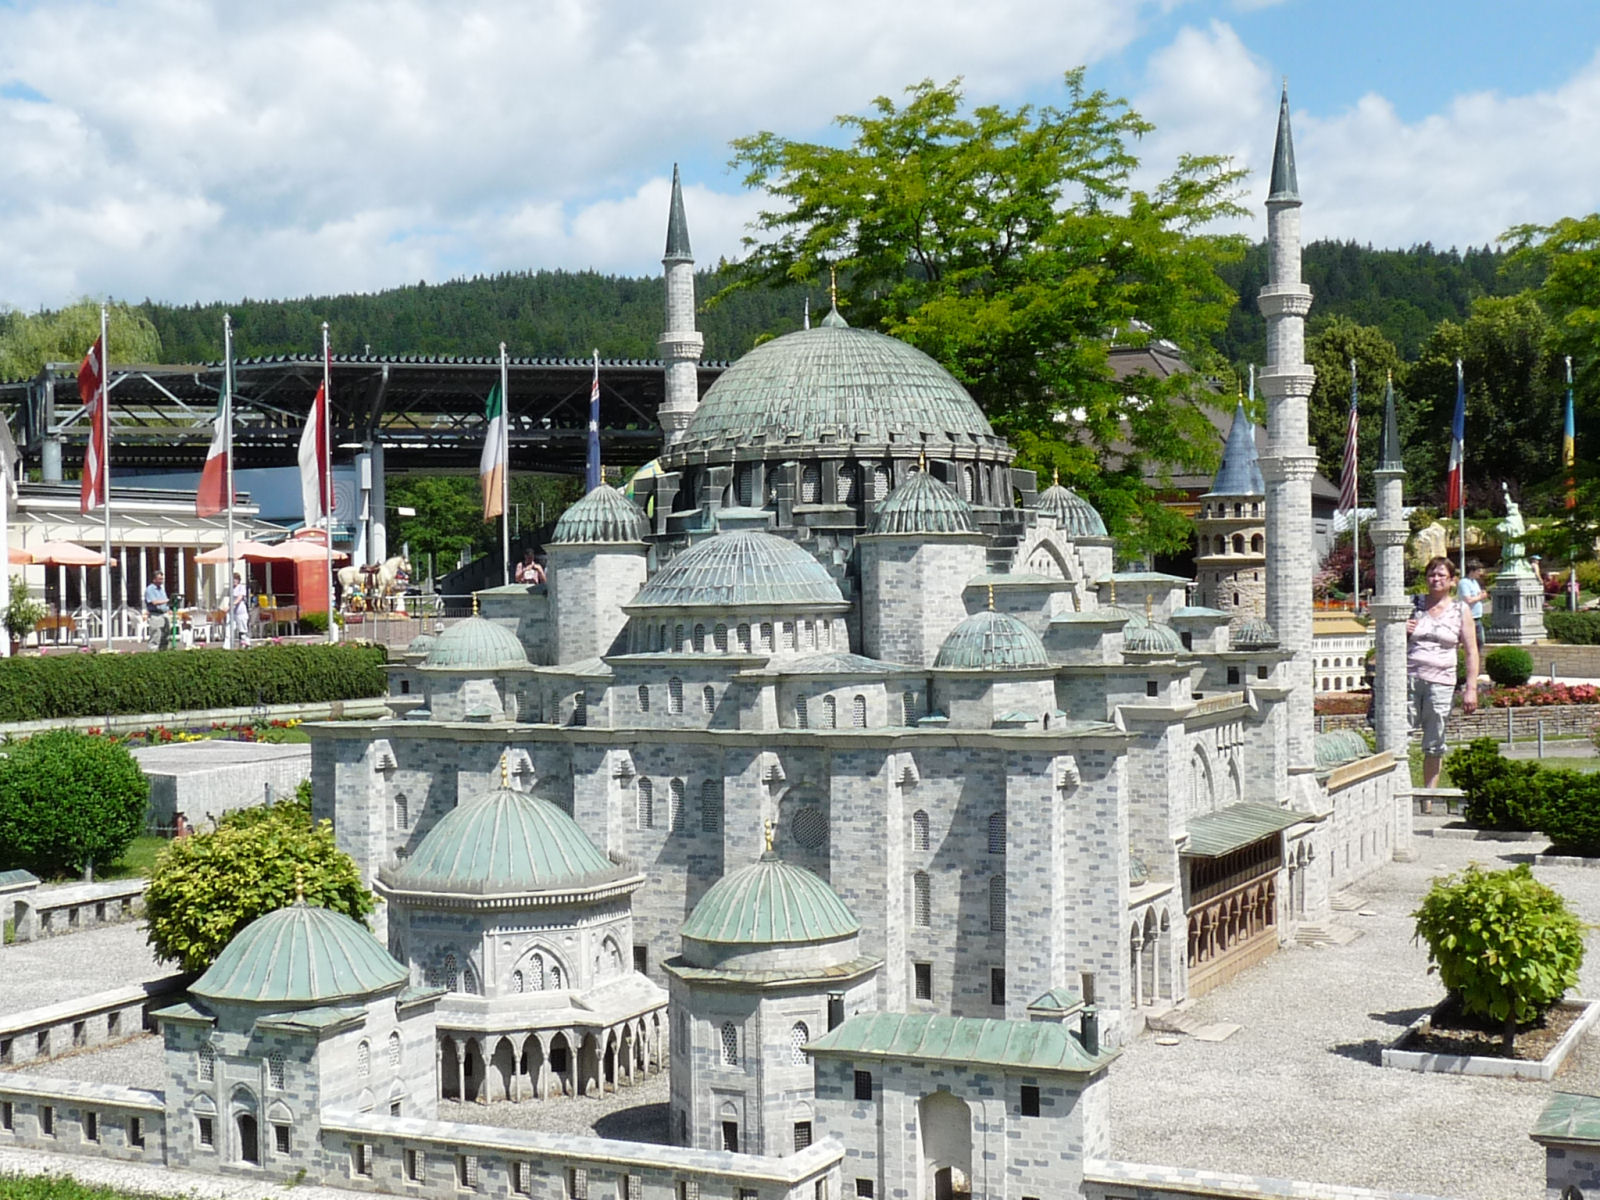 Model of the Istanbul's Süleymaniye Mosque at Minimundus, Klagenfurt, Austria